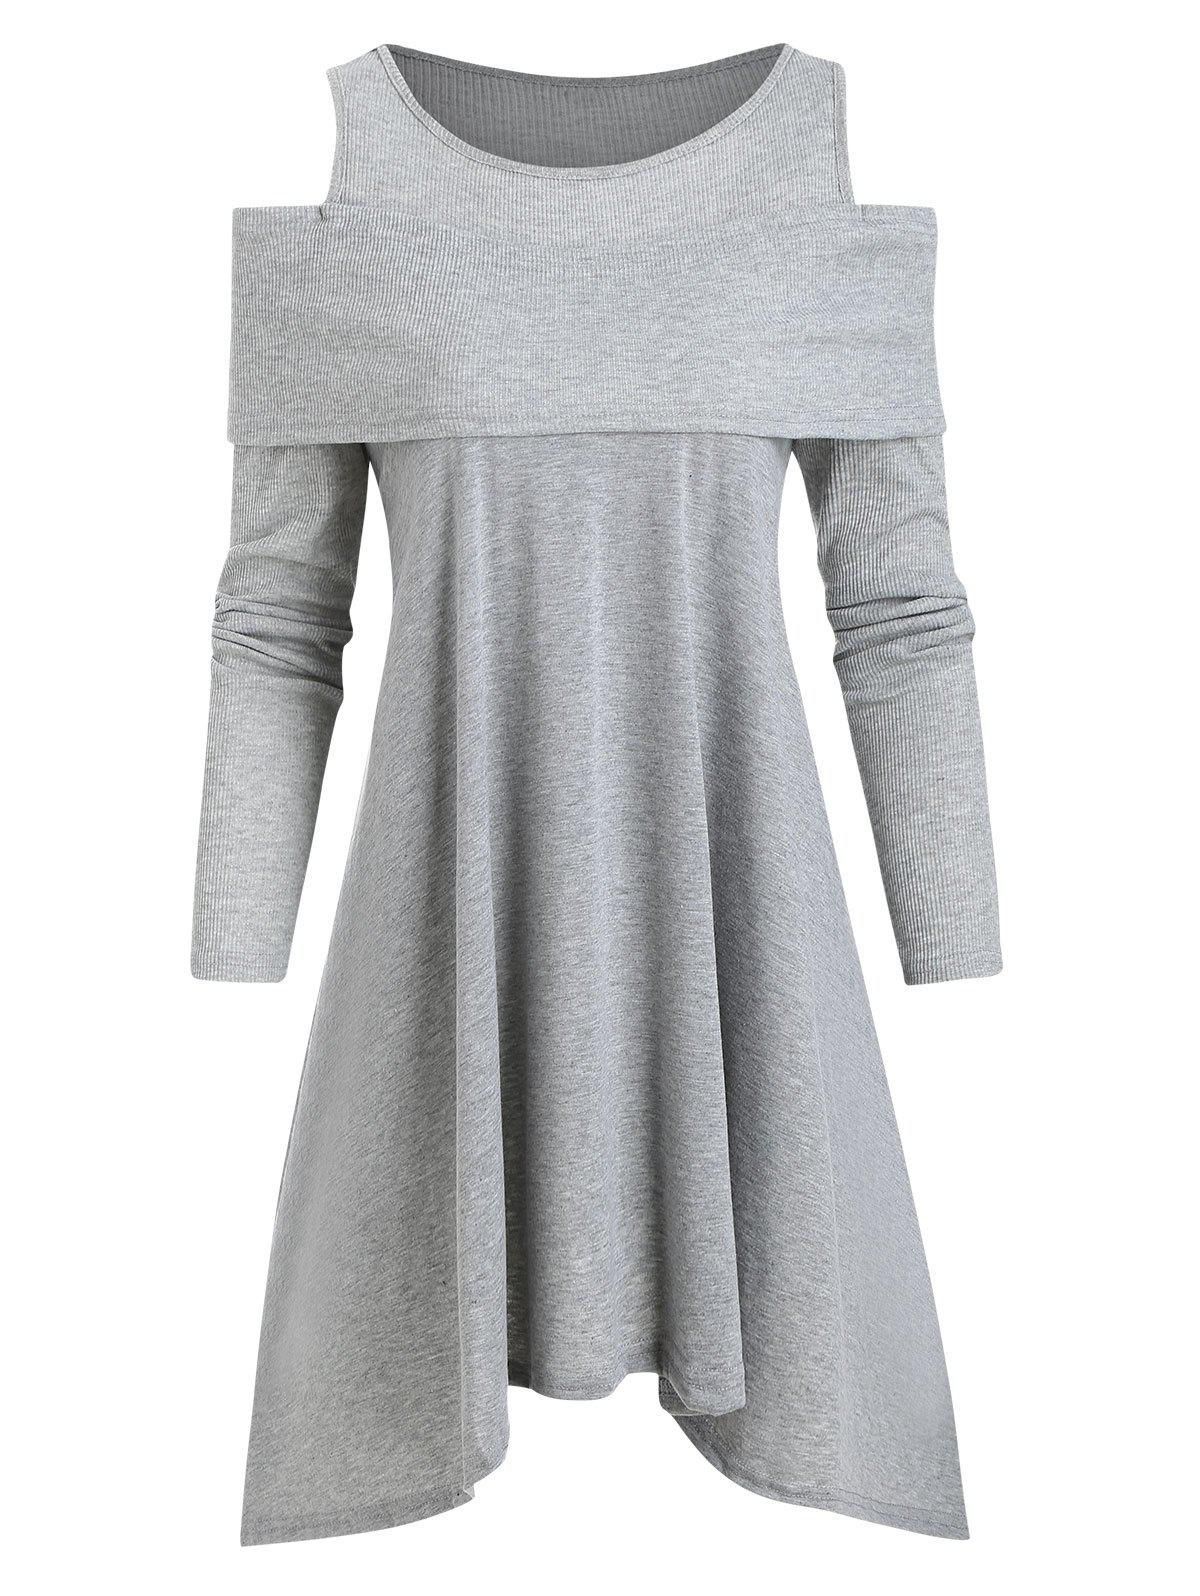 Ribbed Panel Jersey Cold Shoulder Asymmetrical Tunic Top - GRAY L